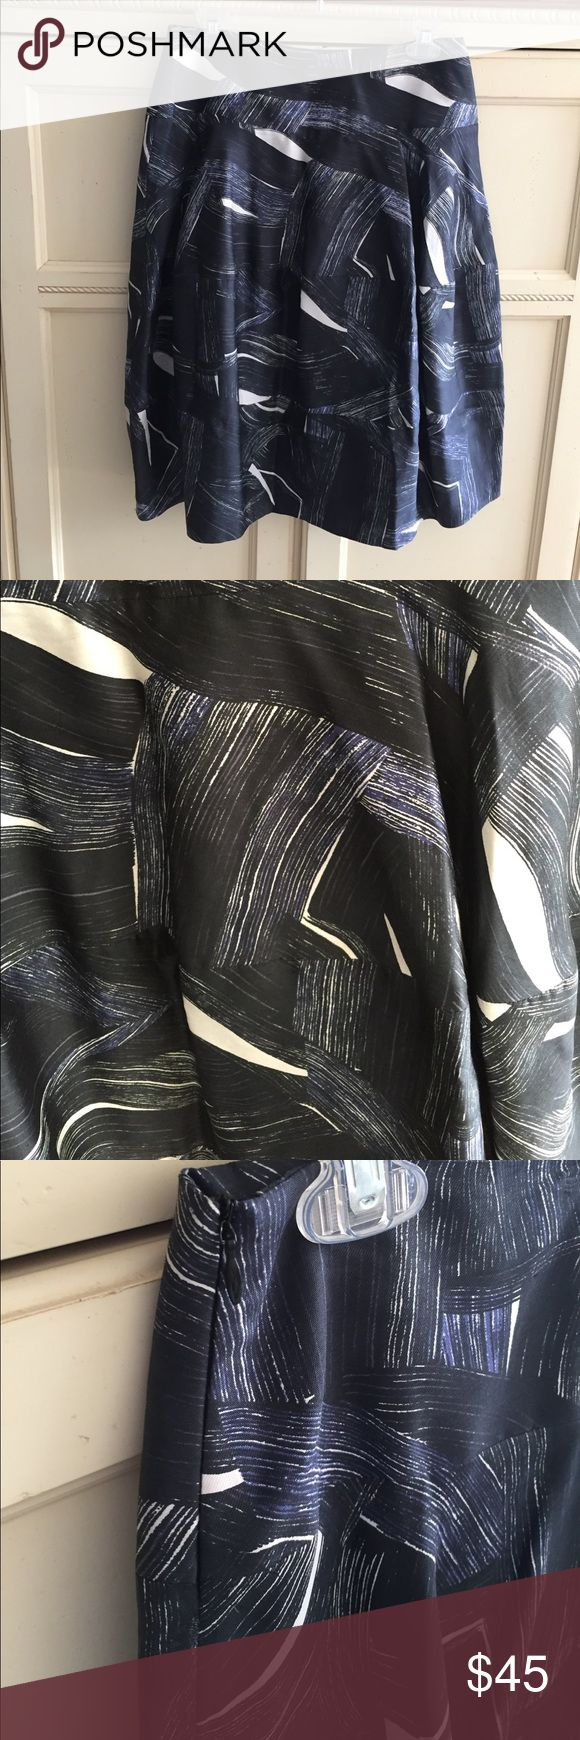 Nicole Farhi silk skirt Gorgeous Nicole Farhi silk skirt in shades of blue and black with dove gray highlight. Size 14 UK which translates to a size 10 US NICOLE FARHI Skirts